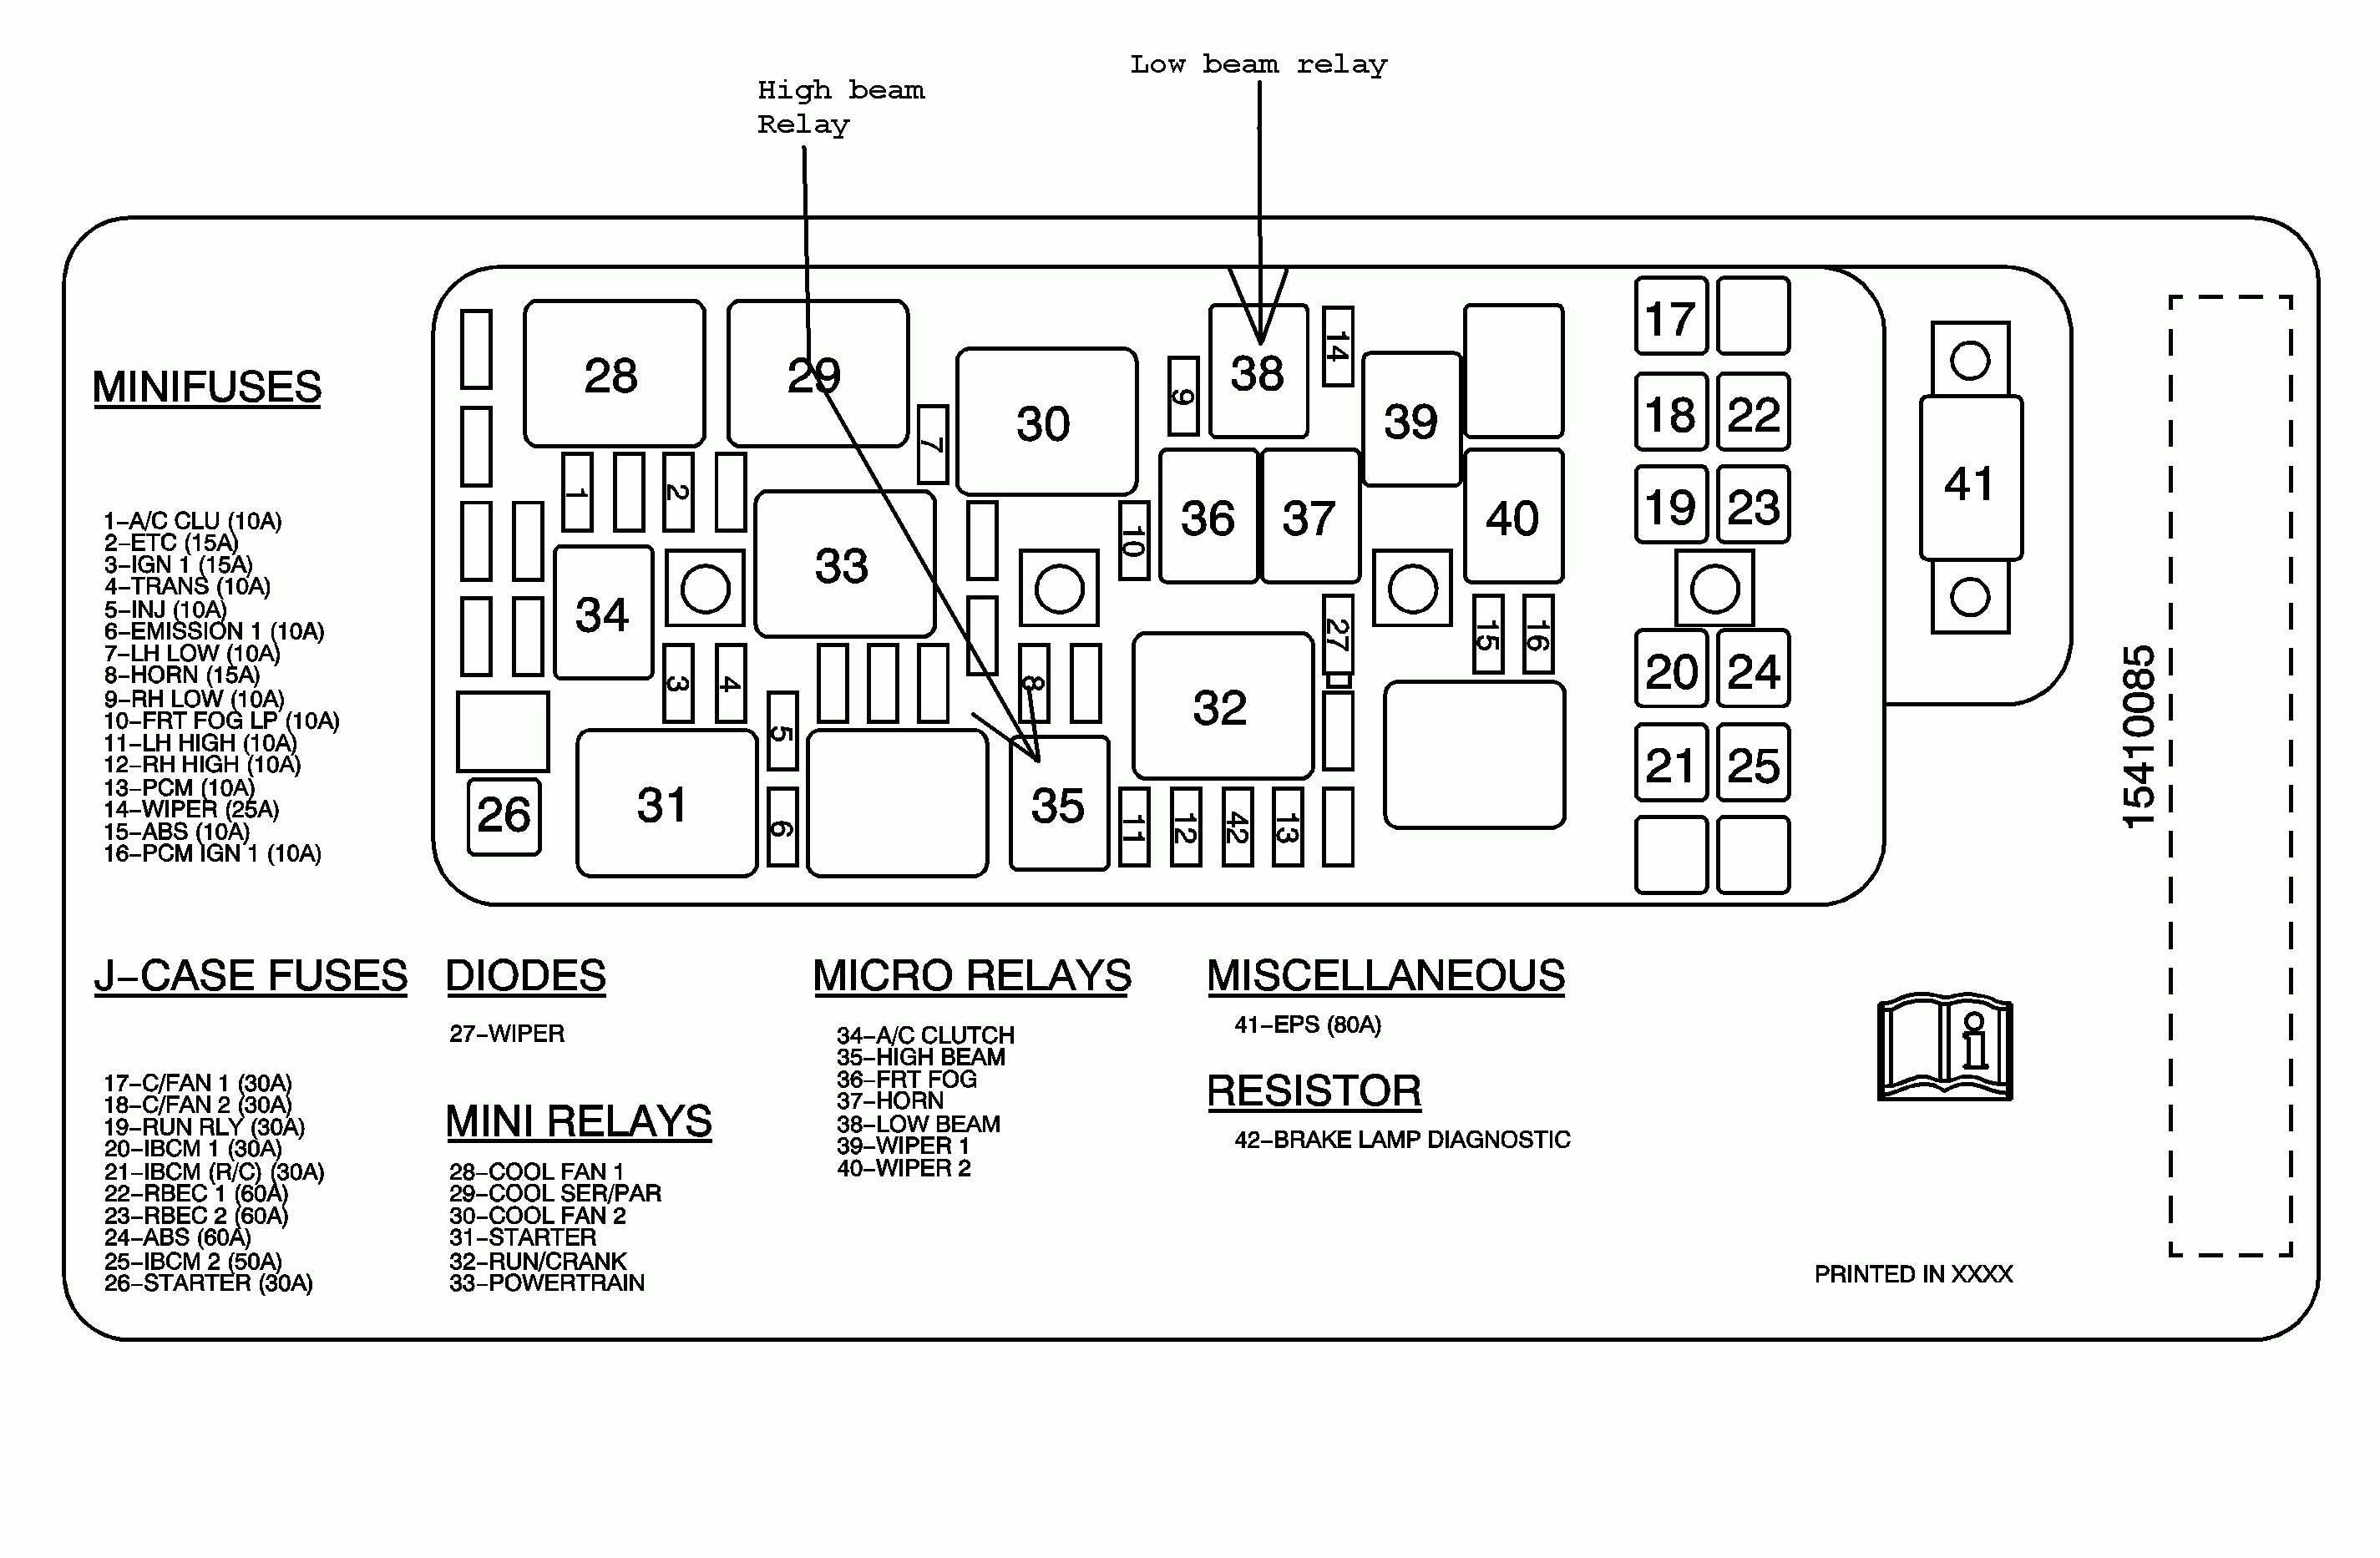 05 Chevy Colorado Factory Radio Wiring Diagram